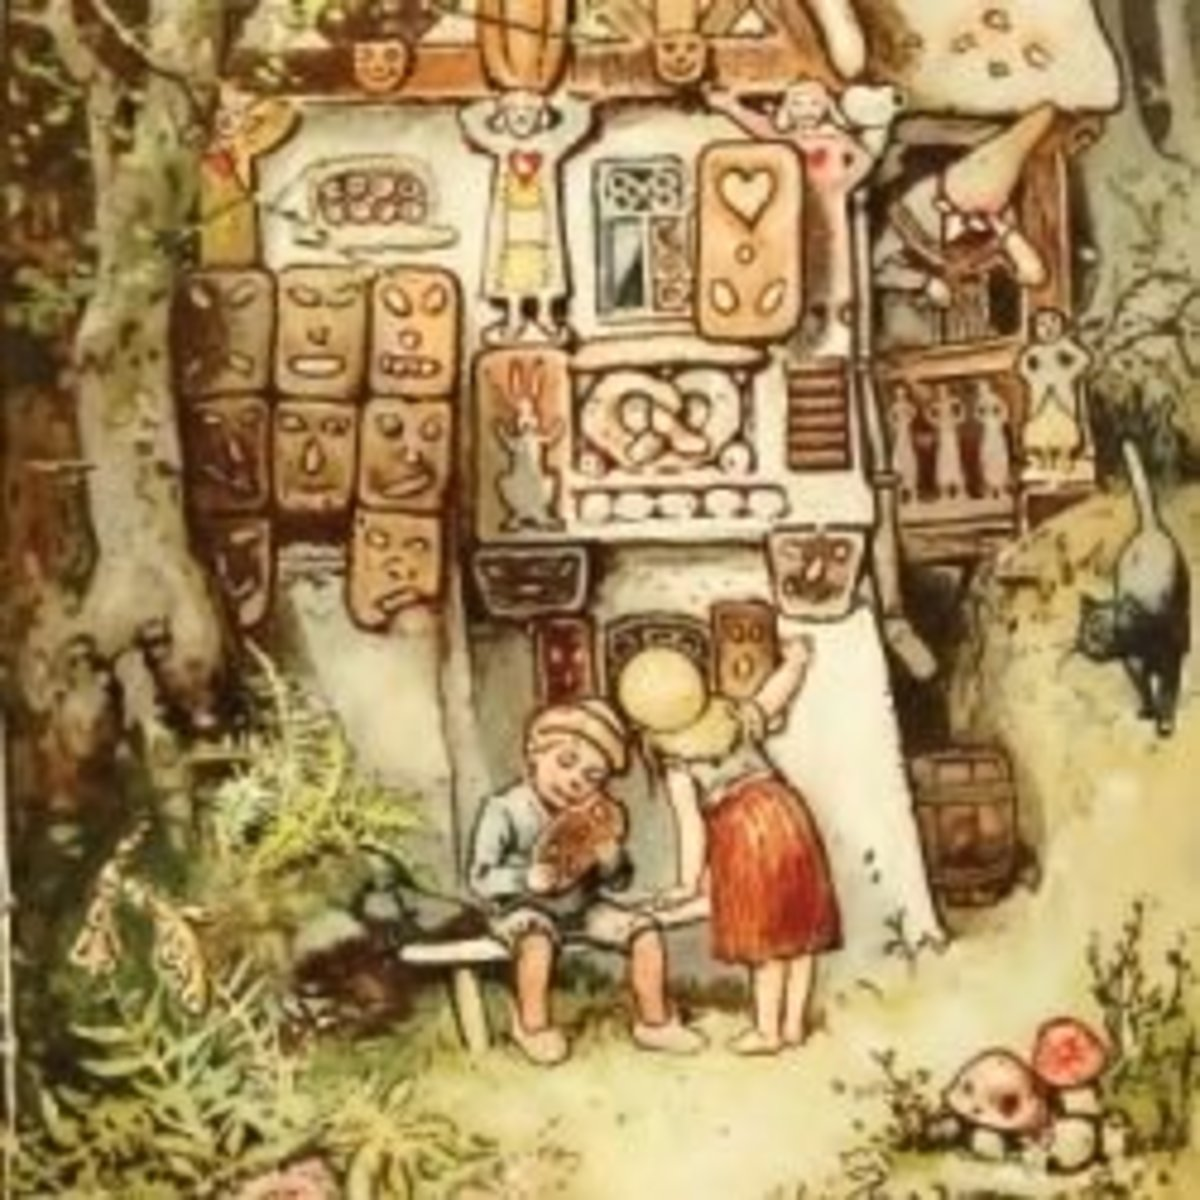 The Story of Hansel and Gretel: Summary, Symbolism, and